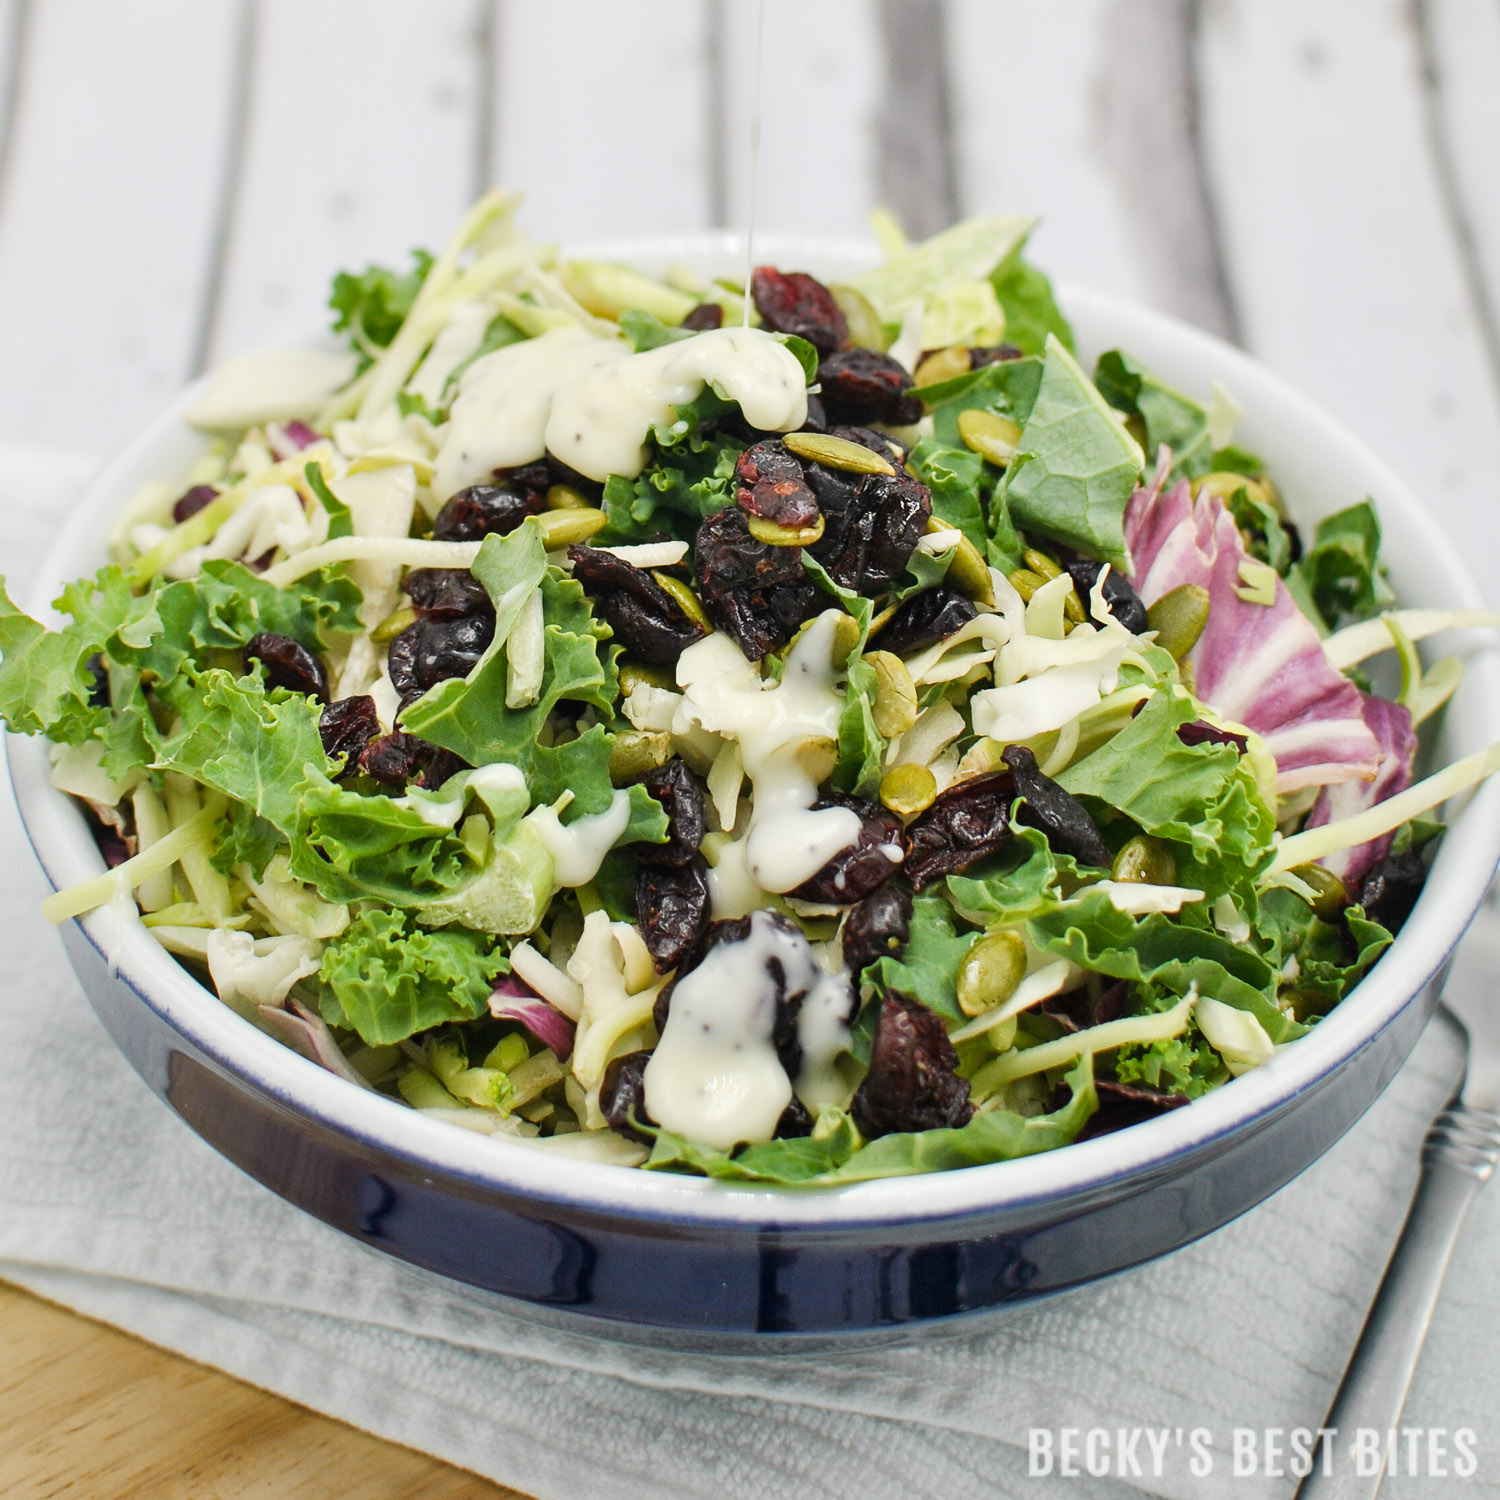 Eat Smart Eat Clean for a Summer Slimdown | beckysbestbites.com